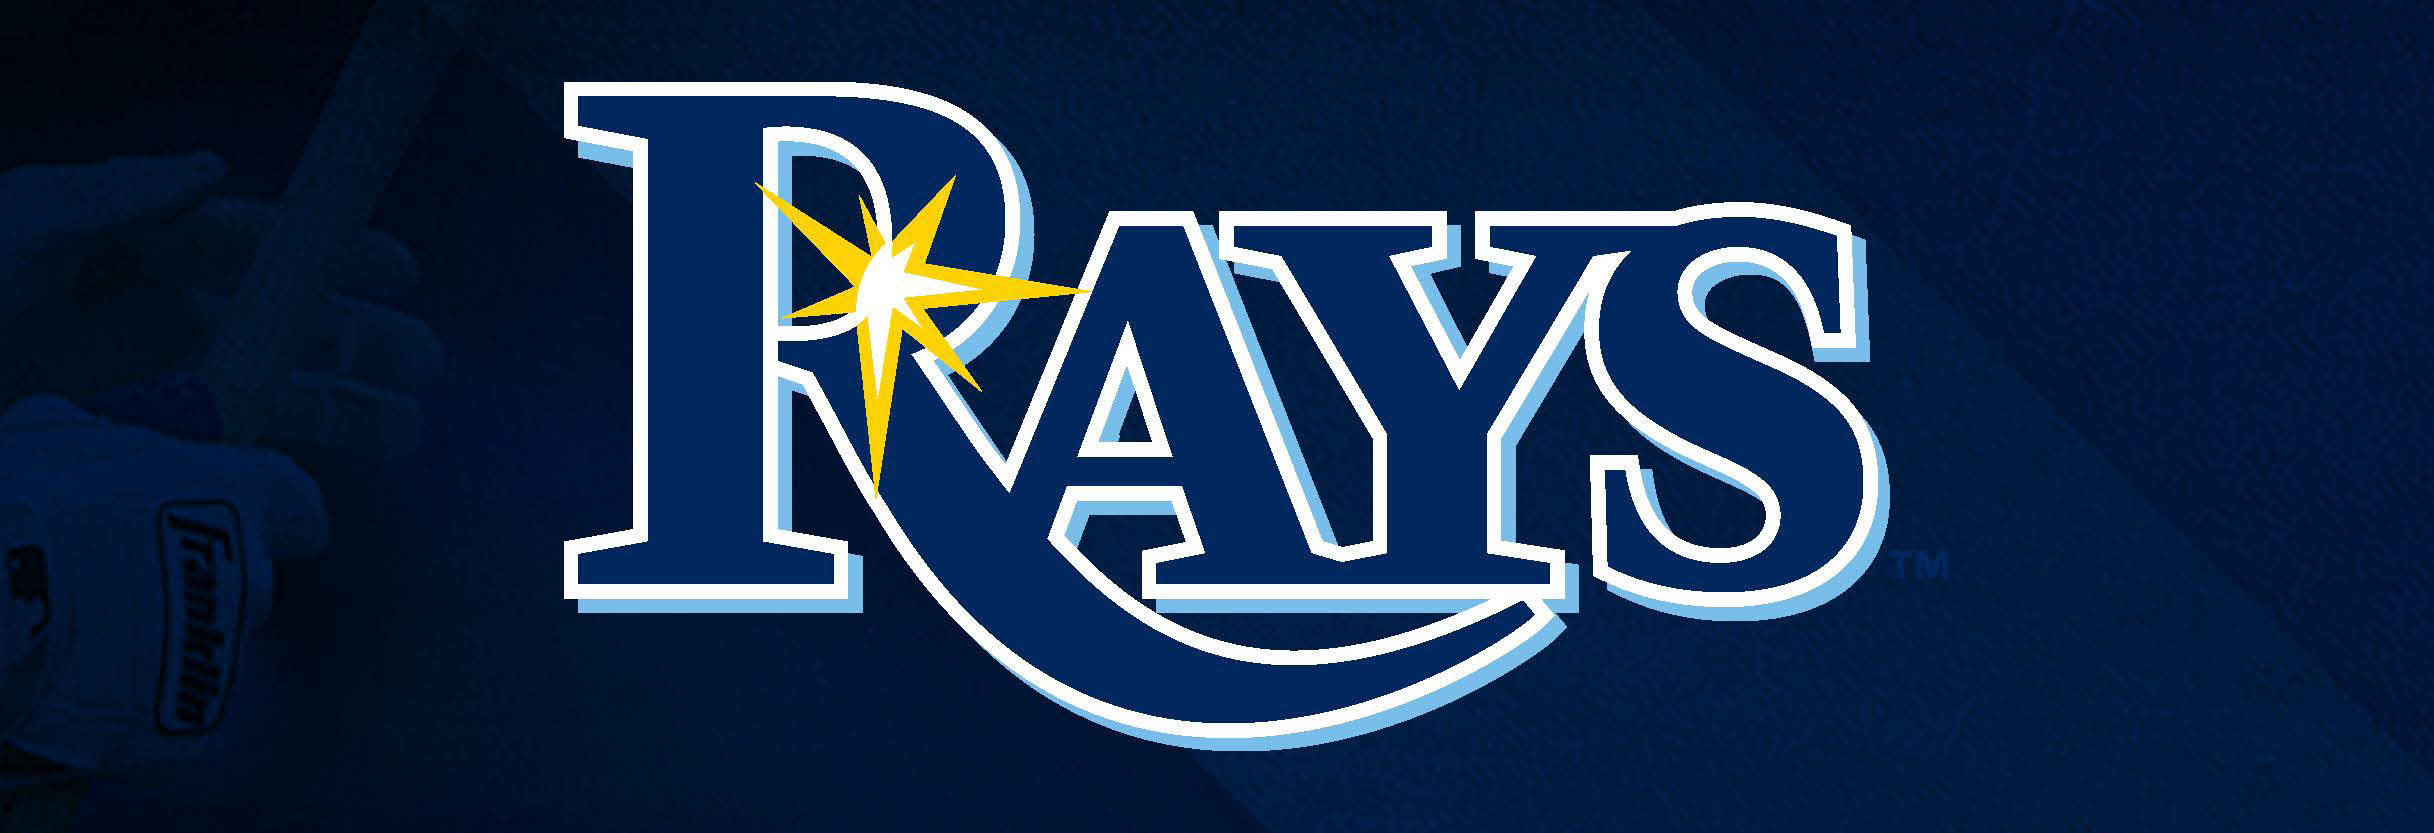 Tampa Bay Rays Baseball Tampa, St Petersburg, Clearwater Banner ad